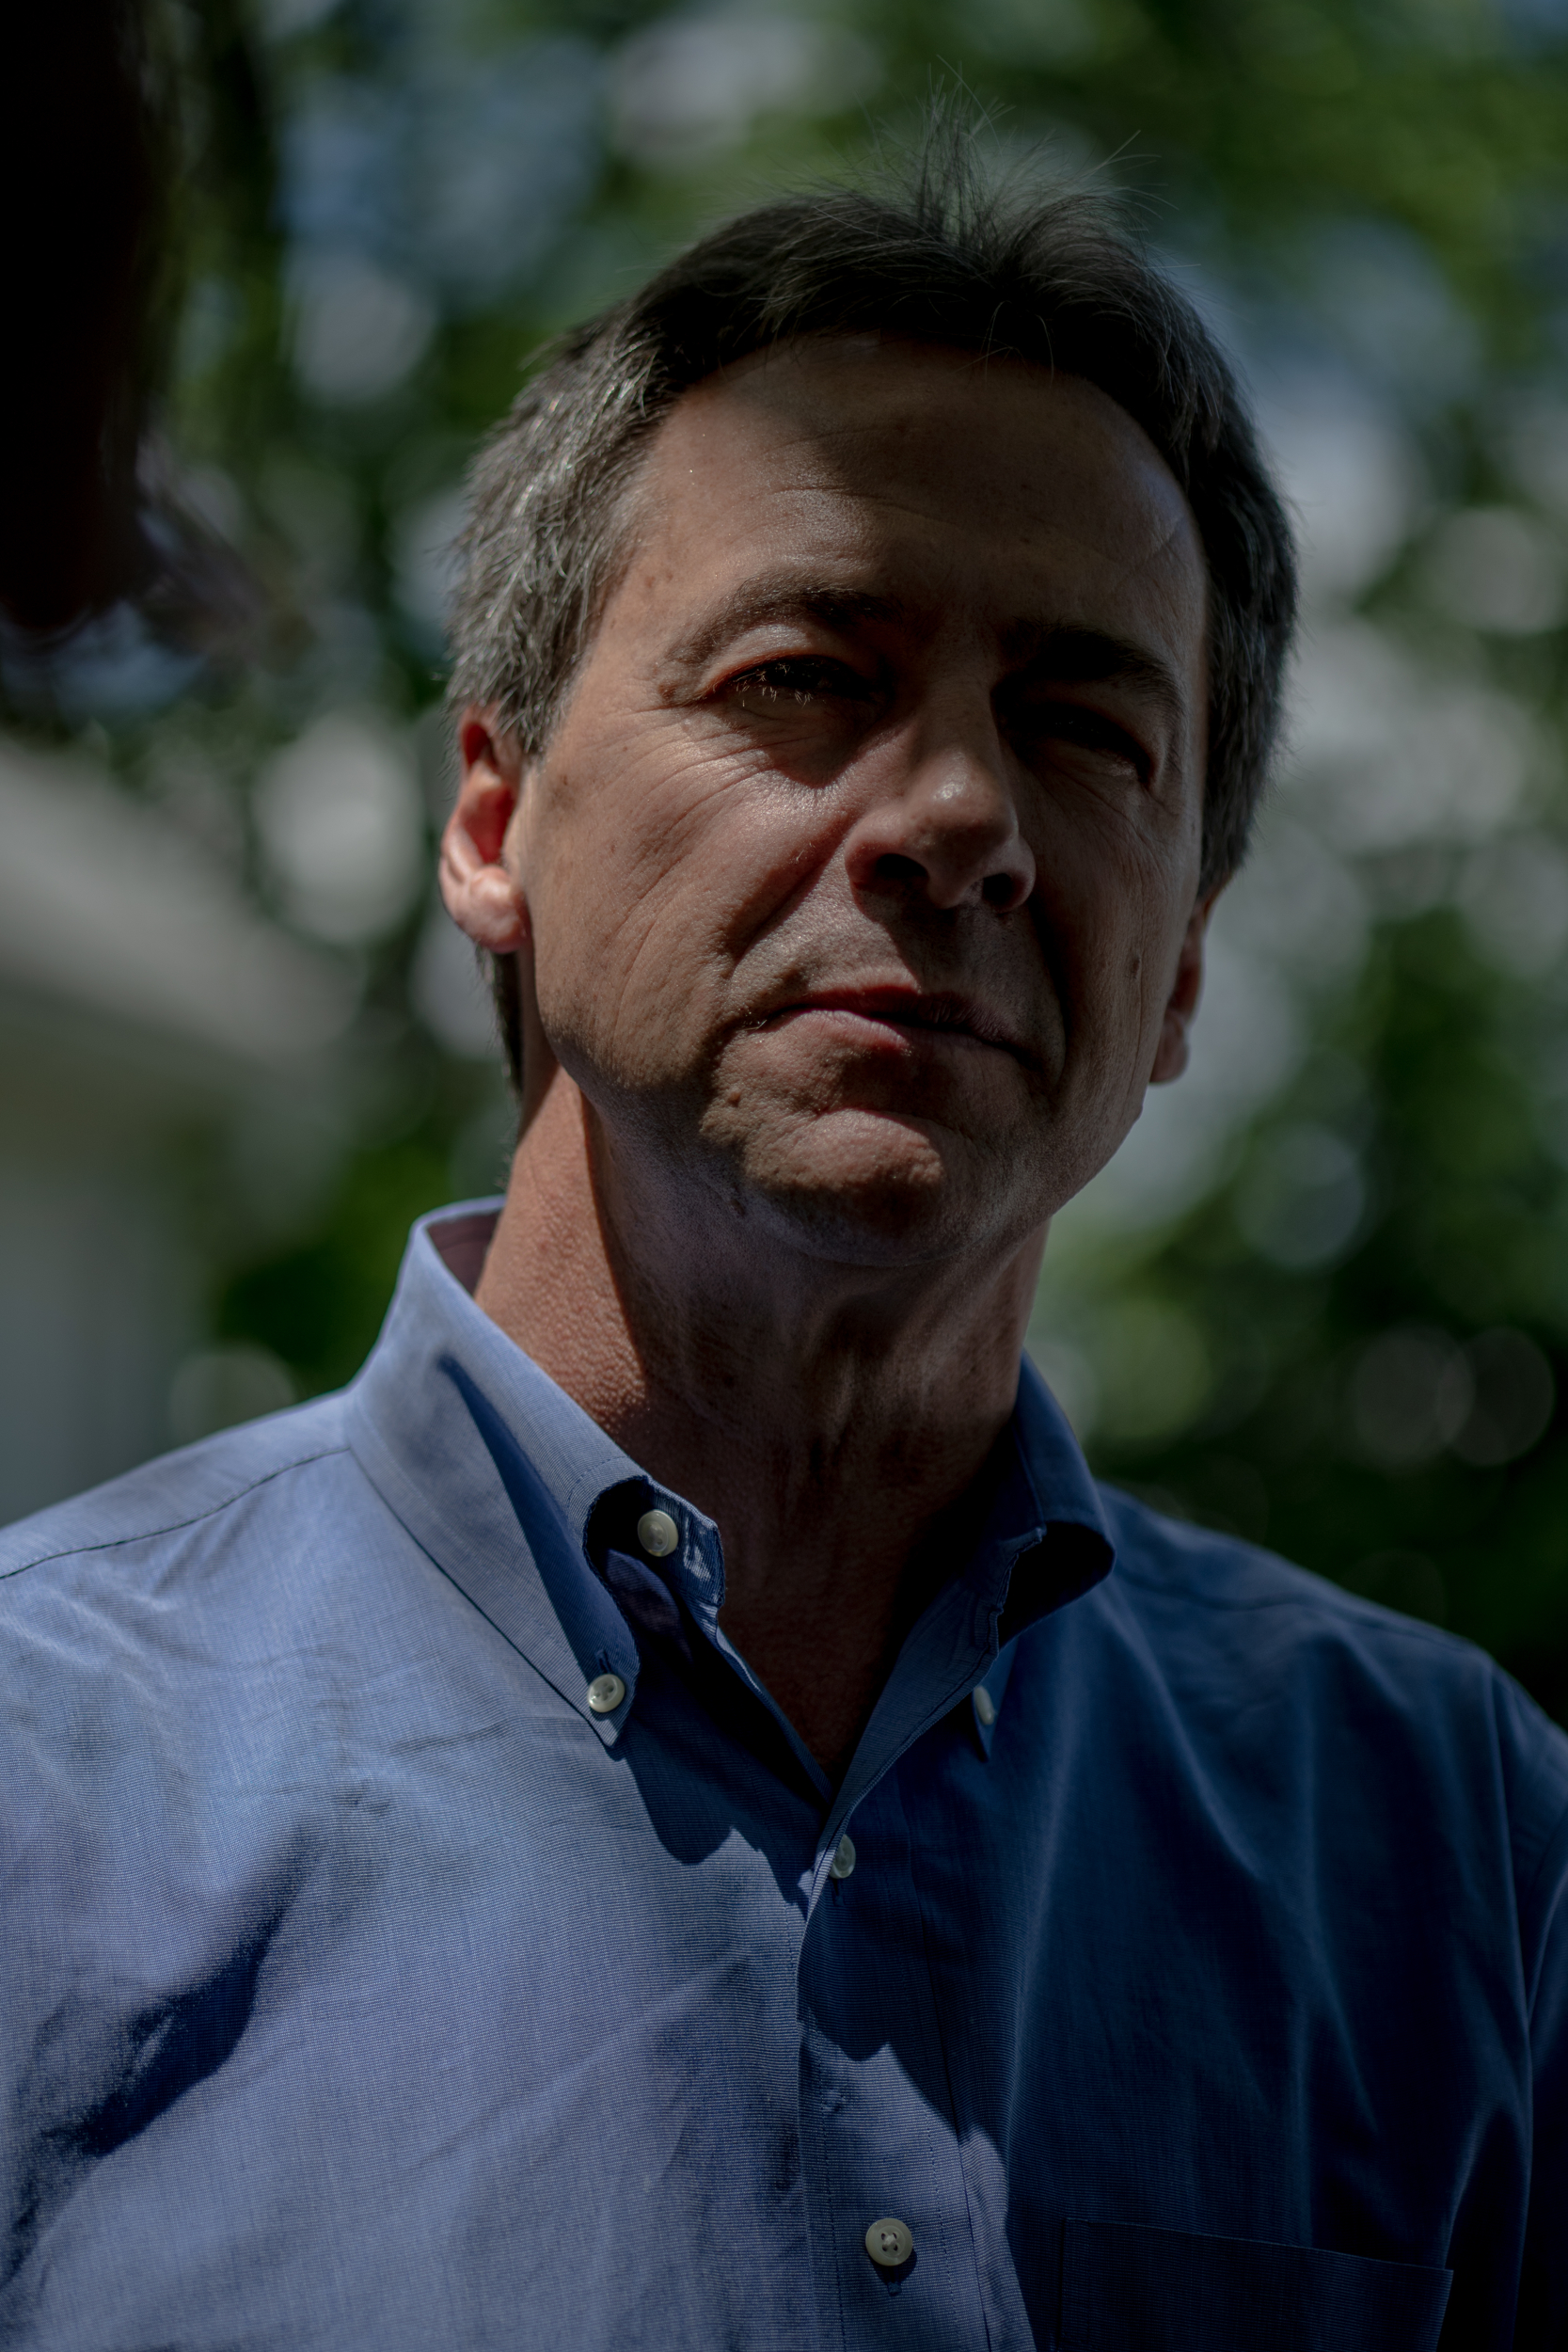 Gov. Steve Bullock of Montana speaks with the press following a house party in Nashua, New Hampshire hosted by Joe Foster and Marissa Baltus on Saturday, June 22, 2019. The stop was one of several over two days during Bullock's first visit to the state as a presidential candidate. 